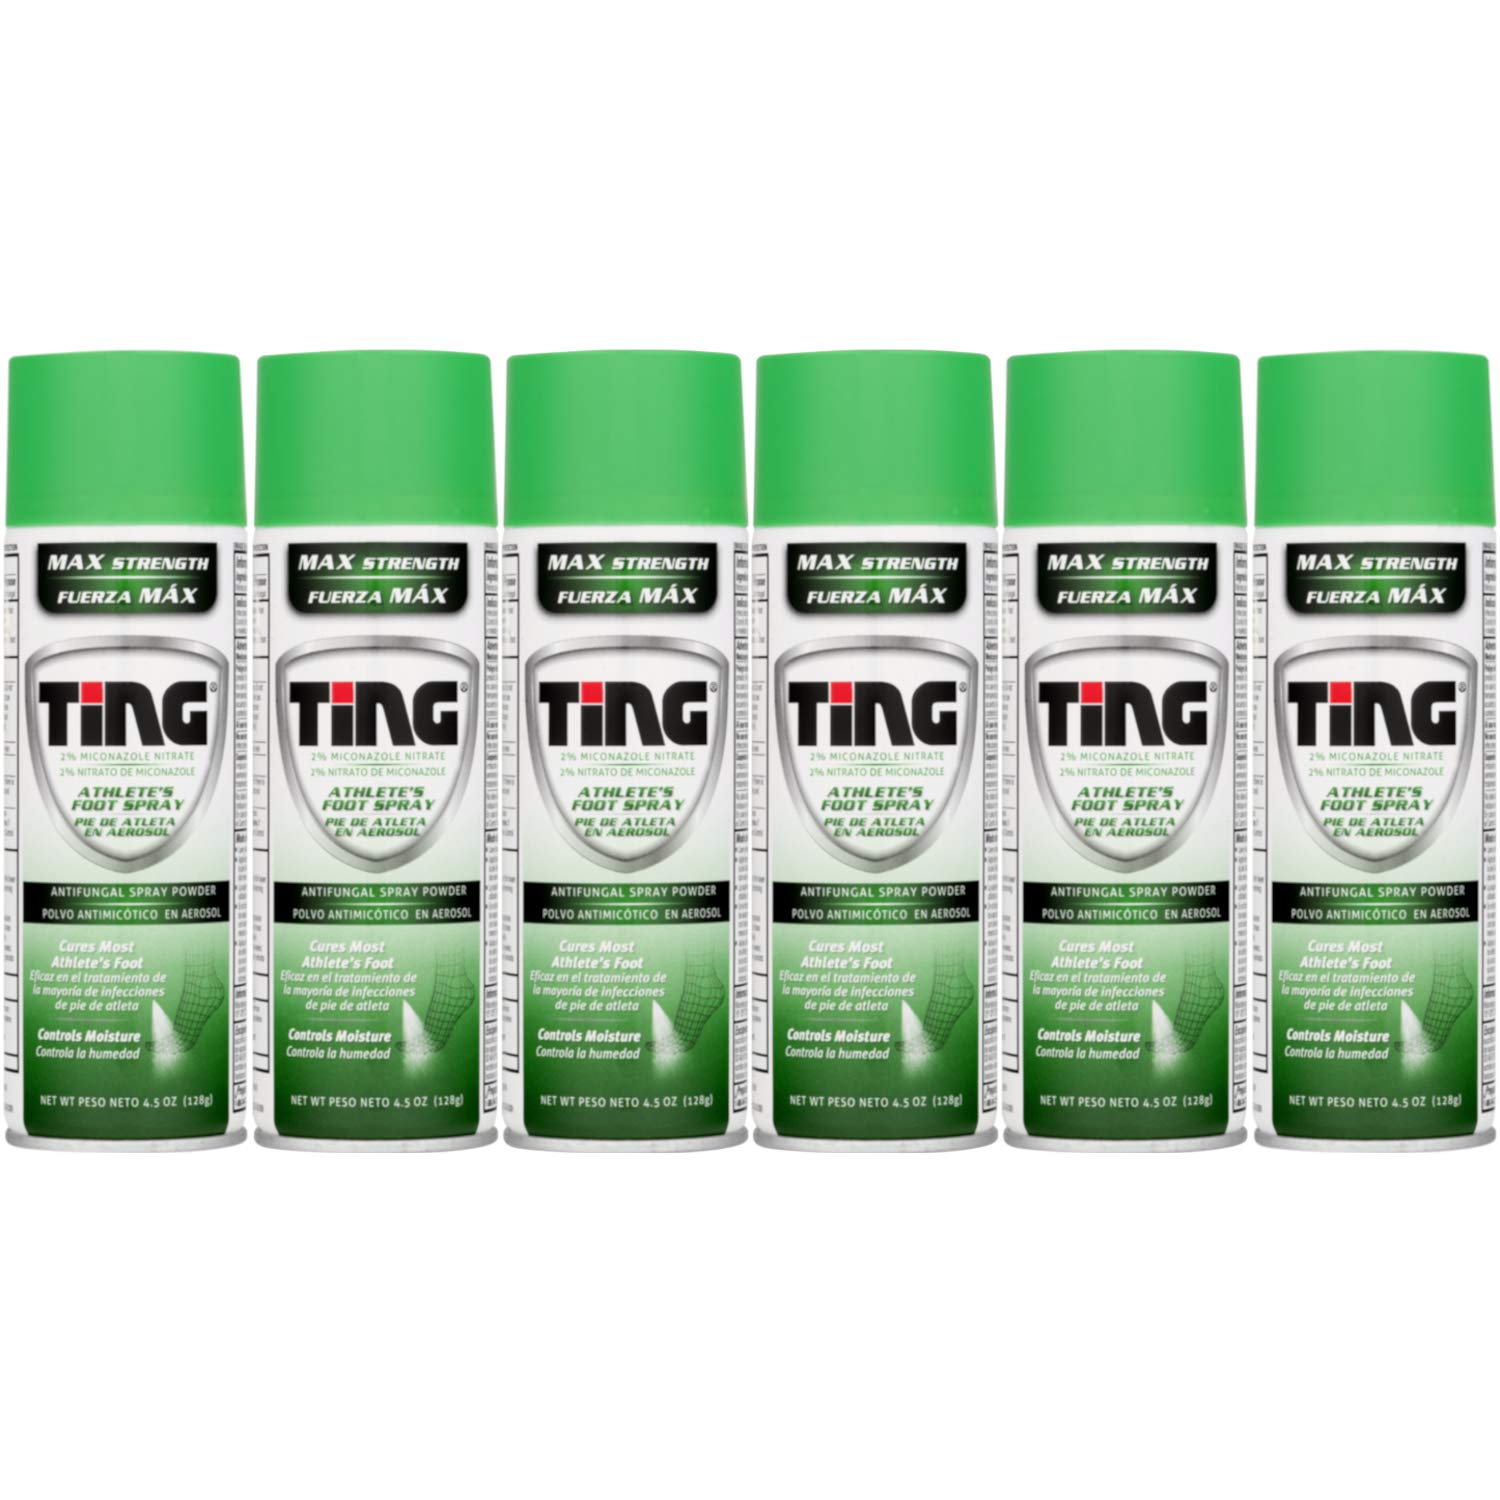 Ting Maximum Strength Athlete's Foot Spray, 4.5 Ounces each (Value Pack of 6) by Ting